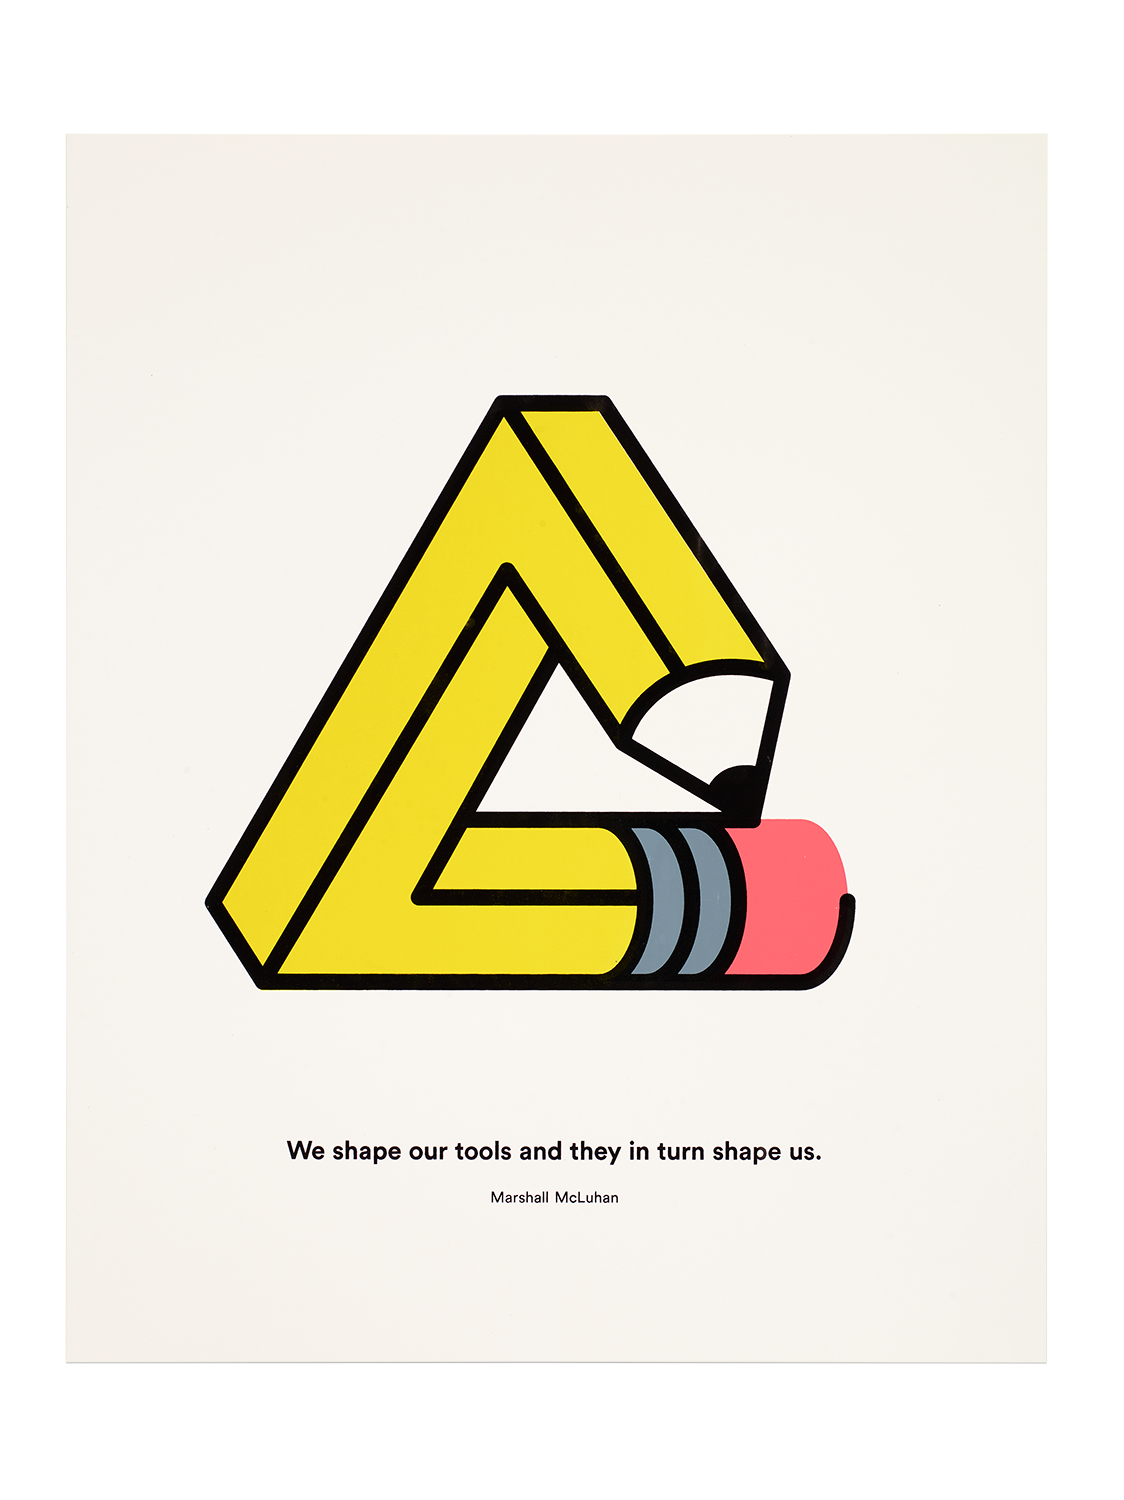 Color printing quotes -  Penrose Pencil Four Color Silkscreen With A Design Referencing A Marshal Mcluhan Quote And Geoff Mcfetridge Drawing Design Printing Tim Belonax